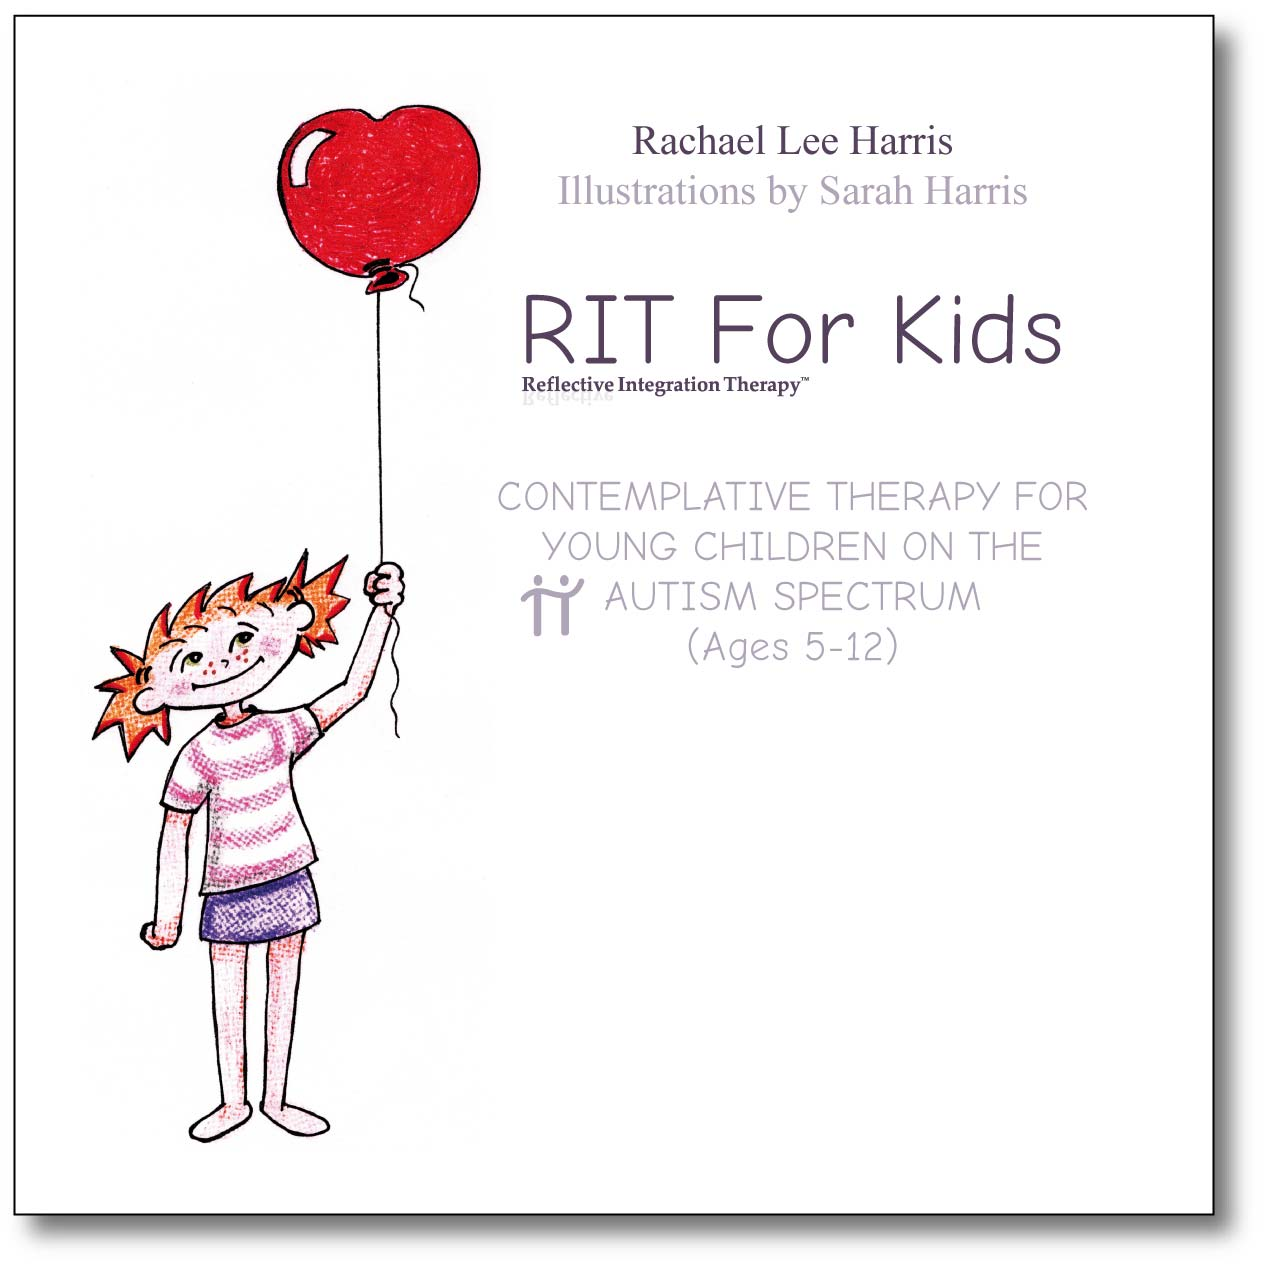 RIT For Kids - Contemplative Therapy For Young Children On The Autism Spectrum (Ages 5-12)